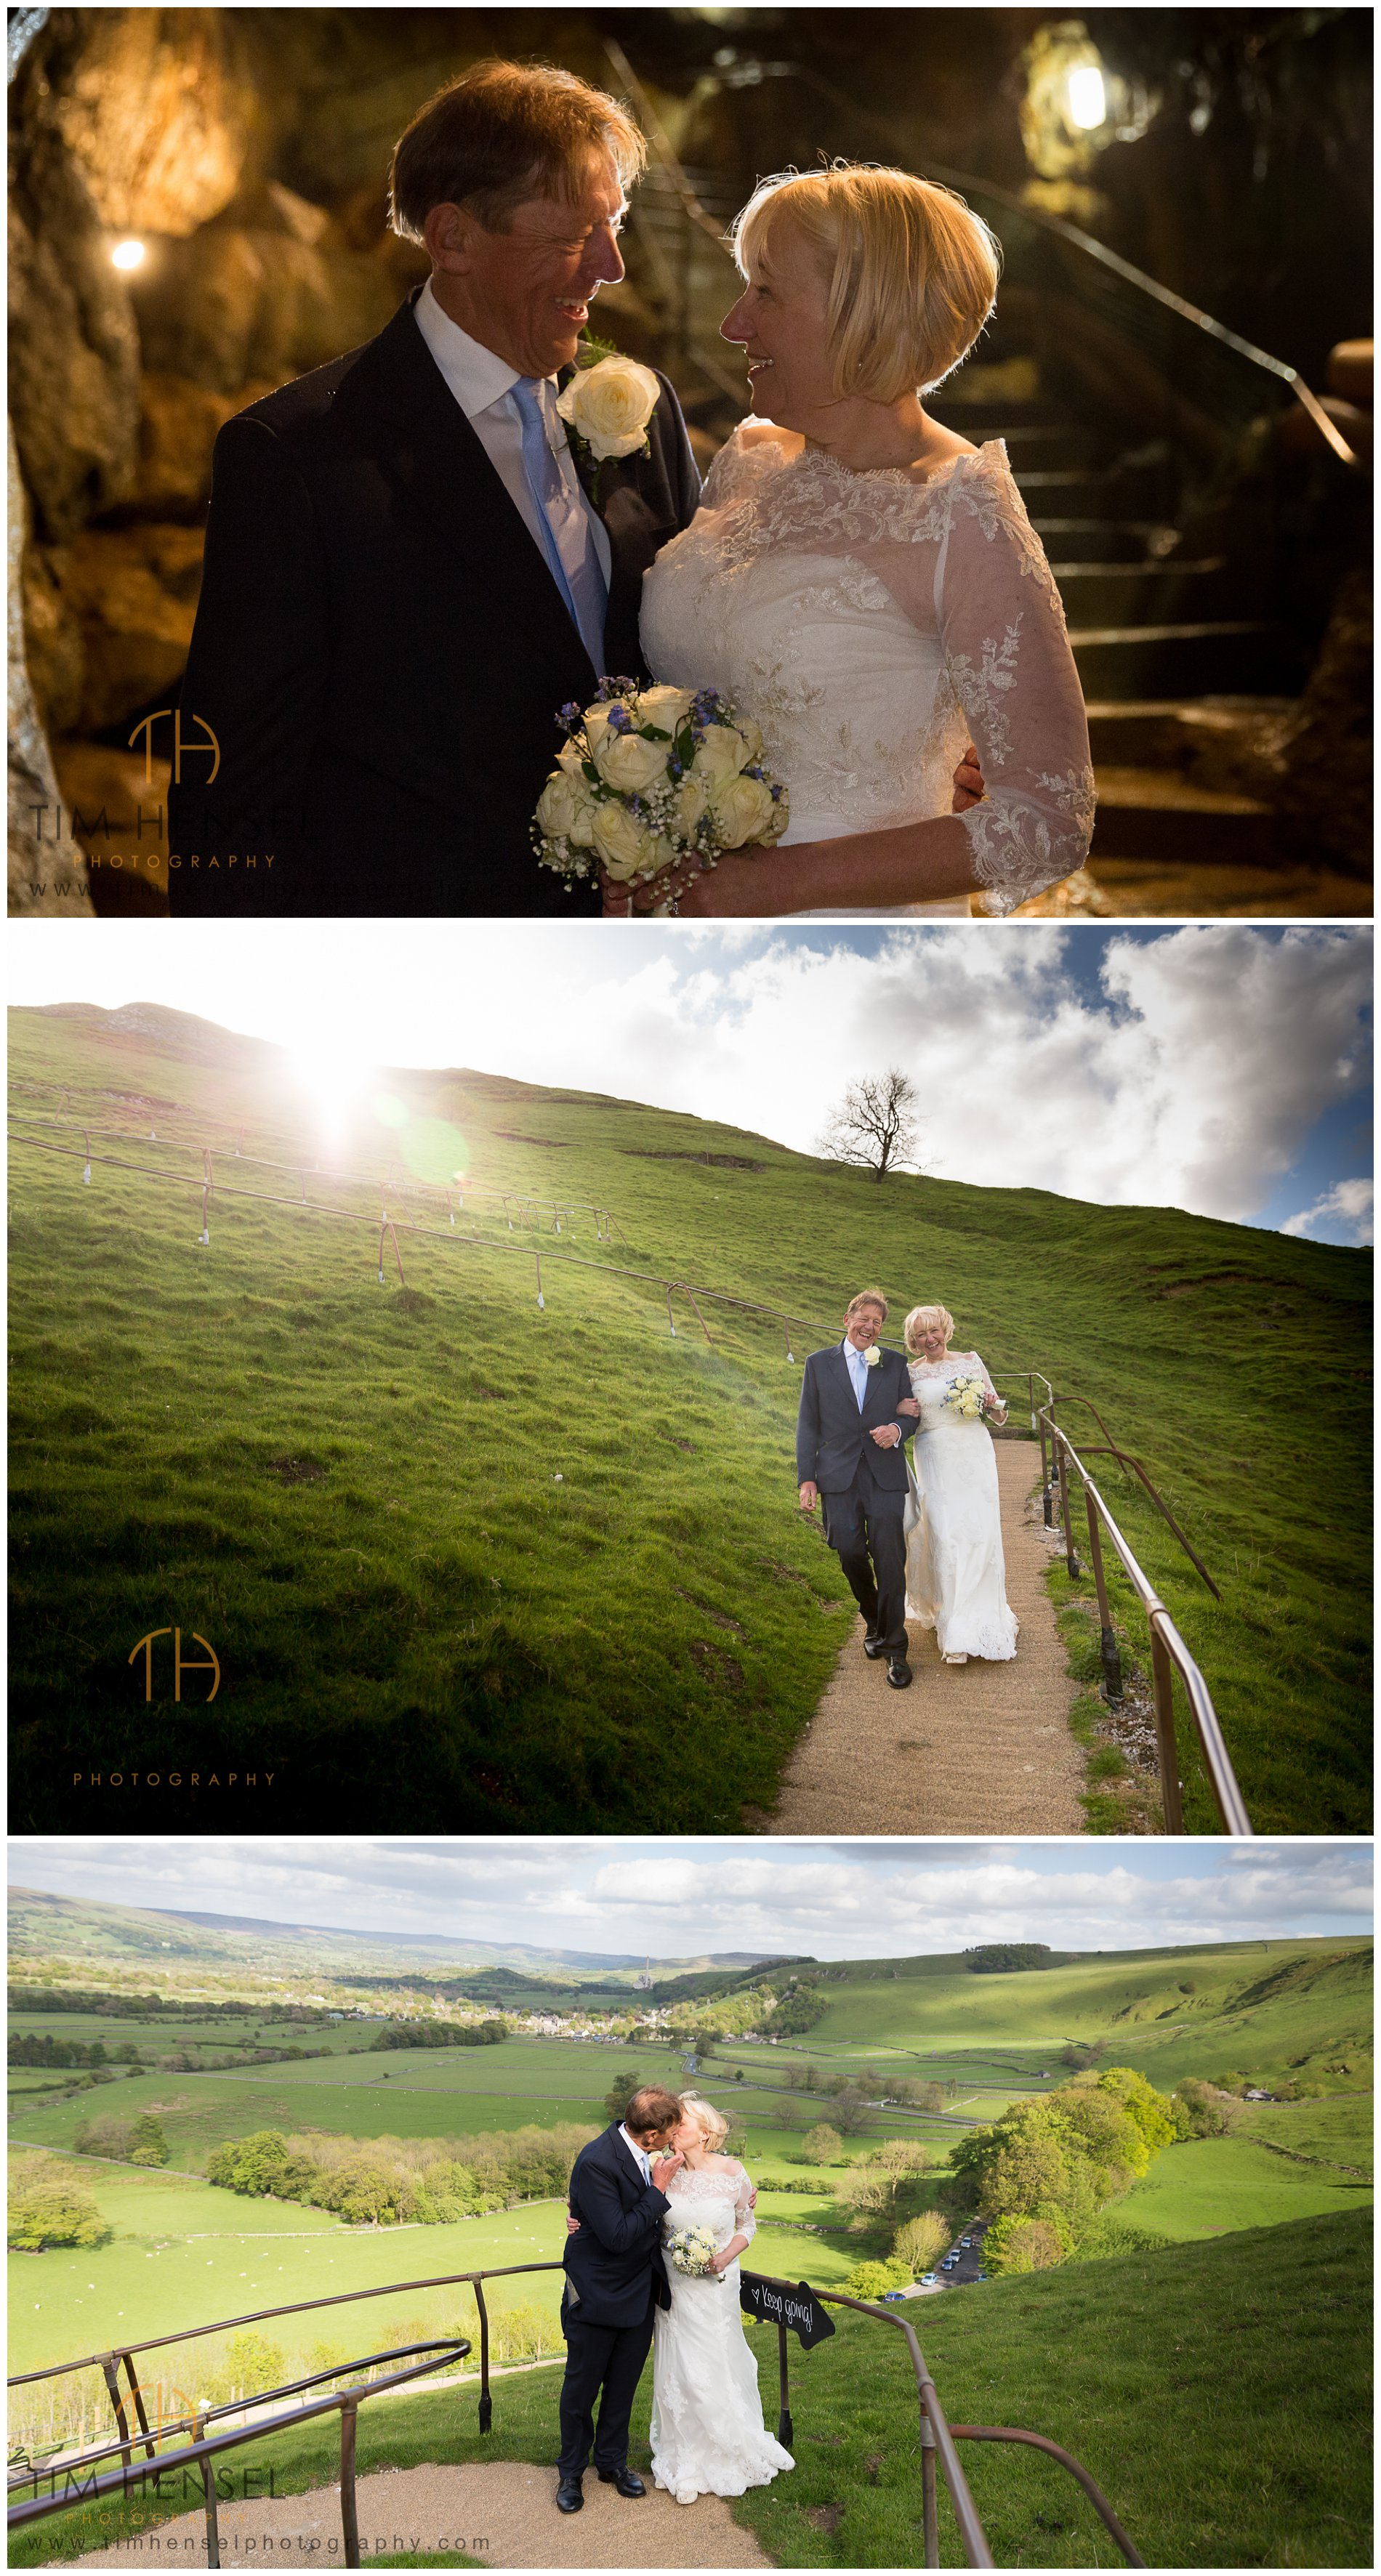 Wedding photography in Derbyshire, at Castleton and underground in a cavern.